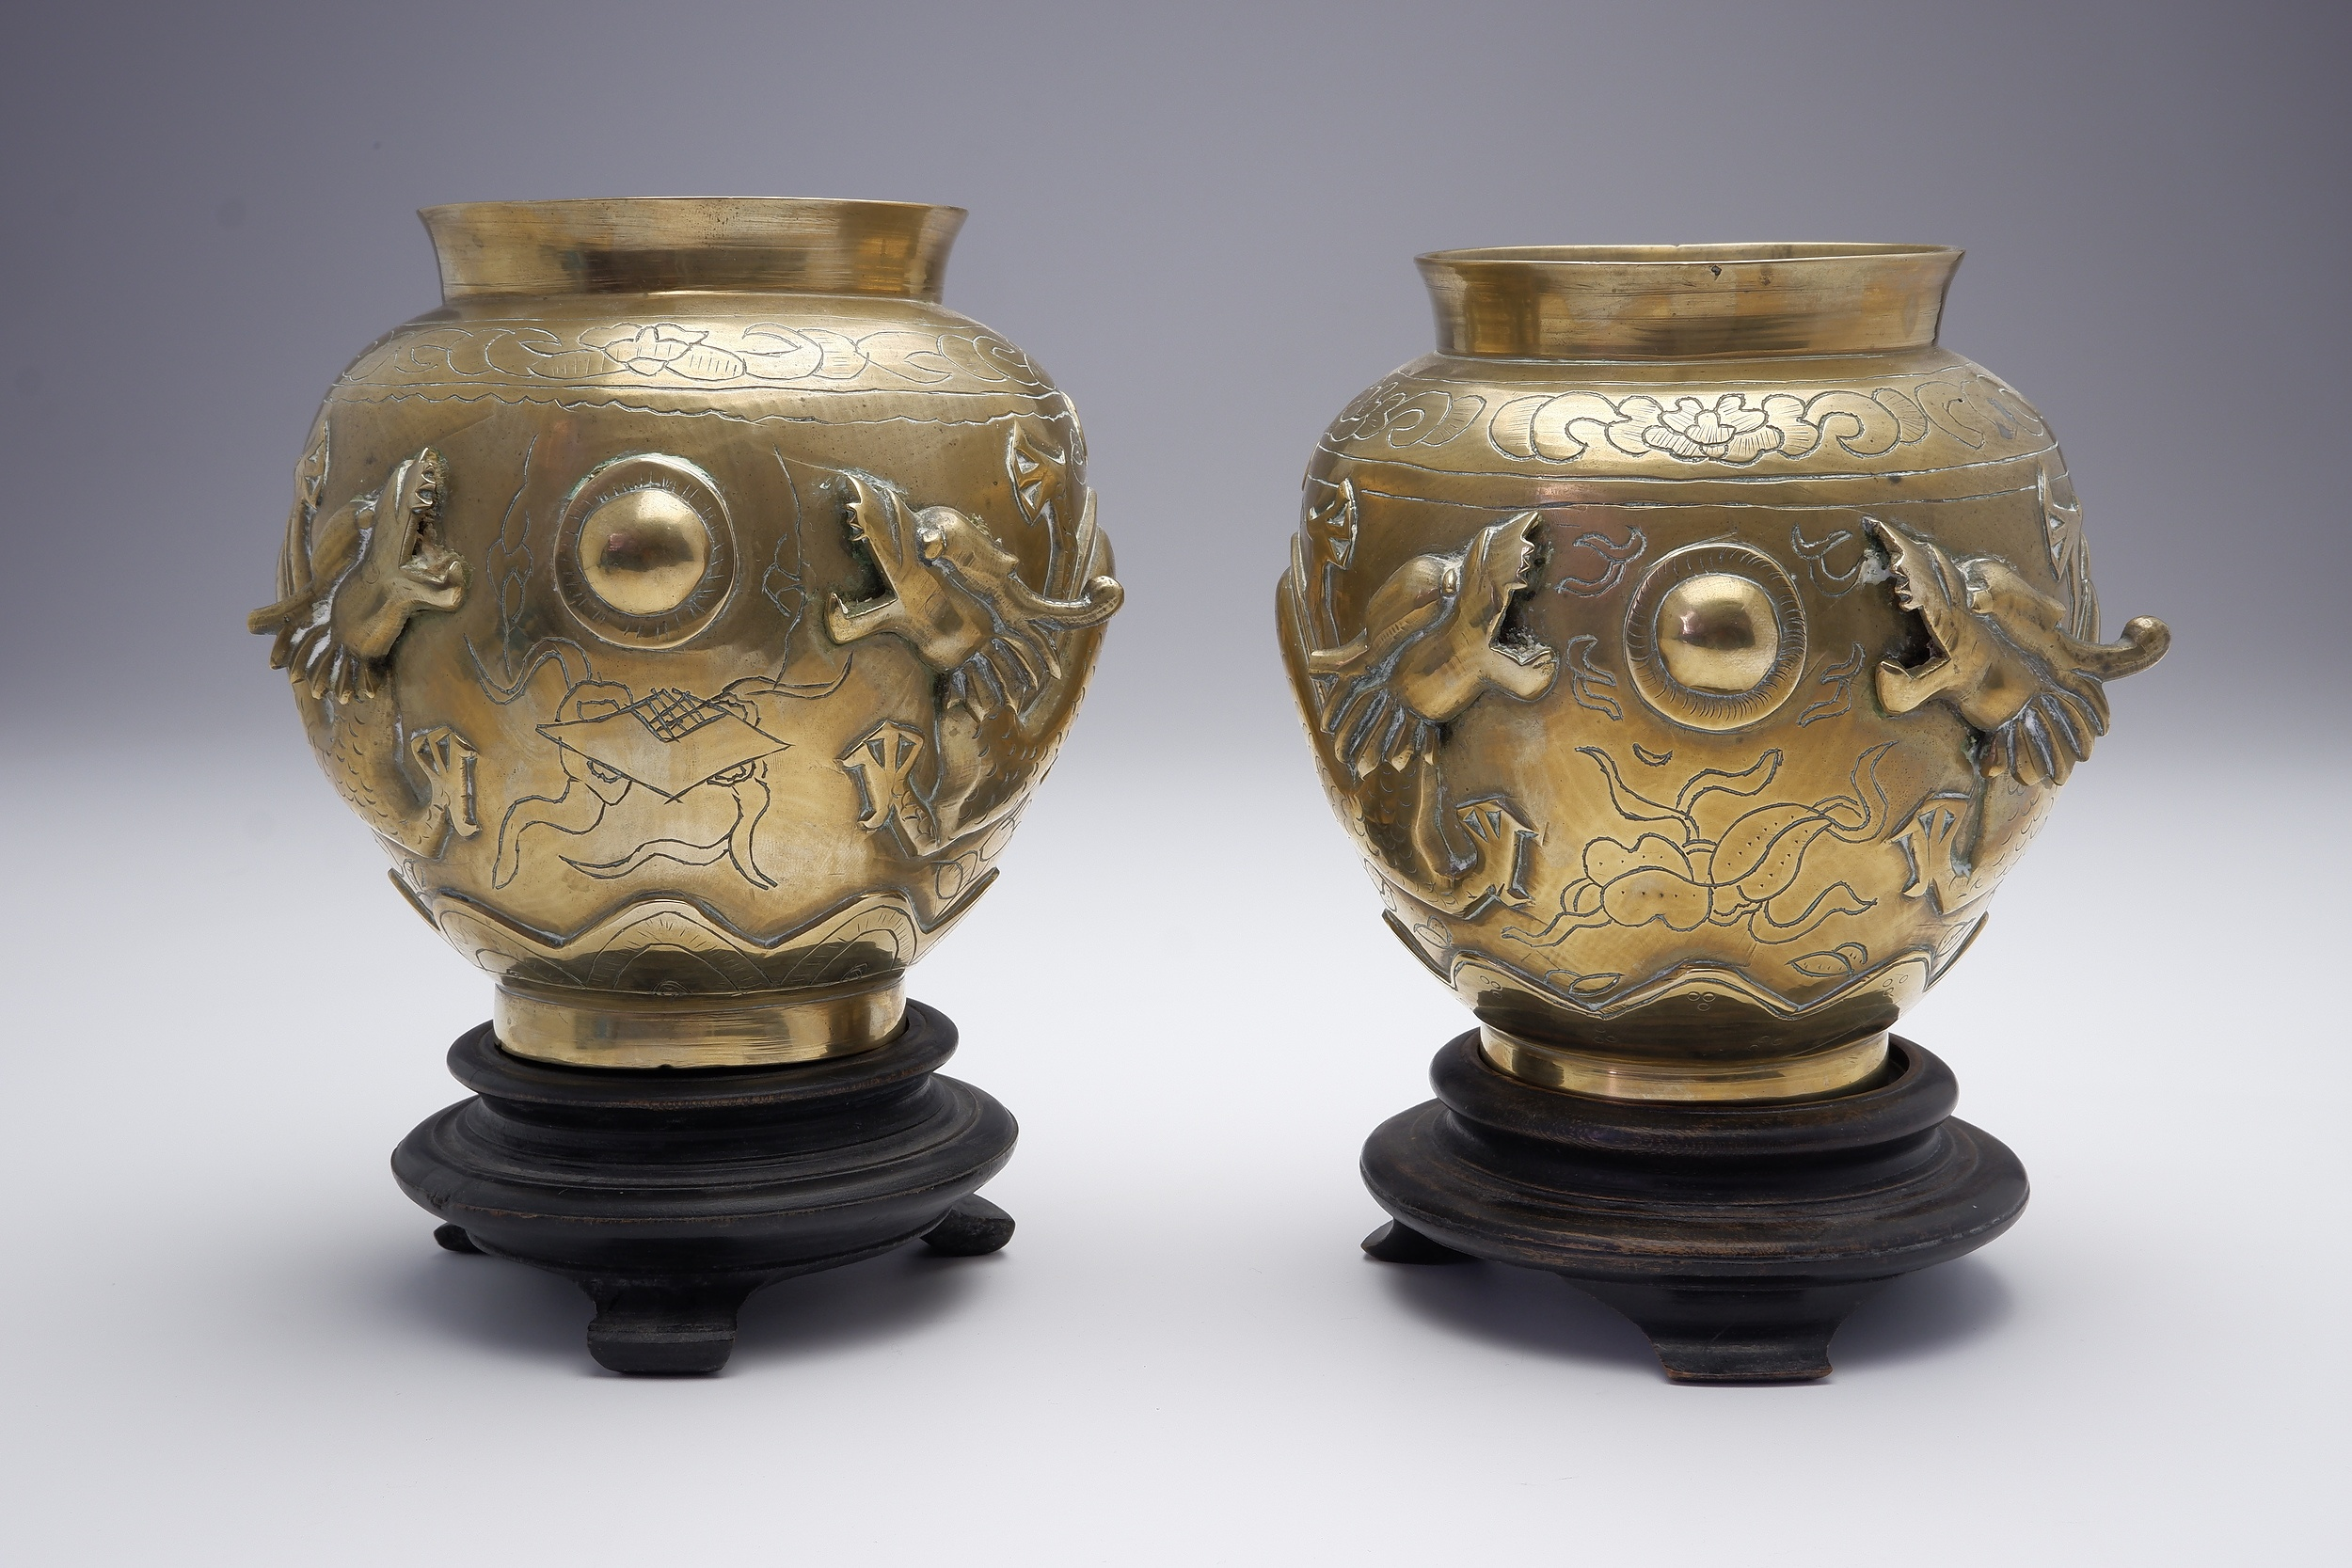 'Pair of Chinese Cast and Engraved Brass Dragon Vases, Late 19th Century'